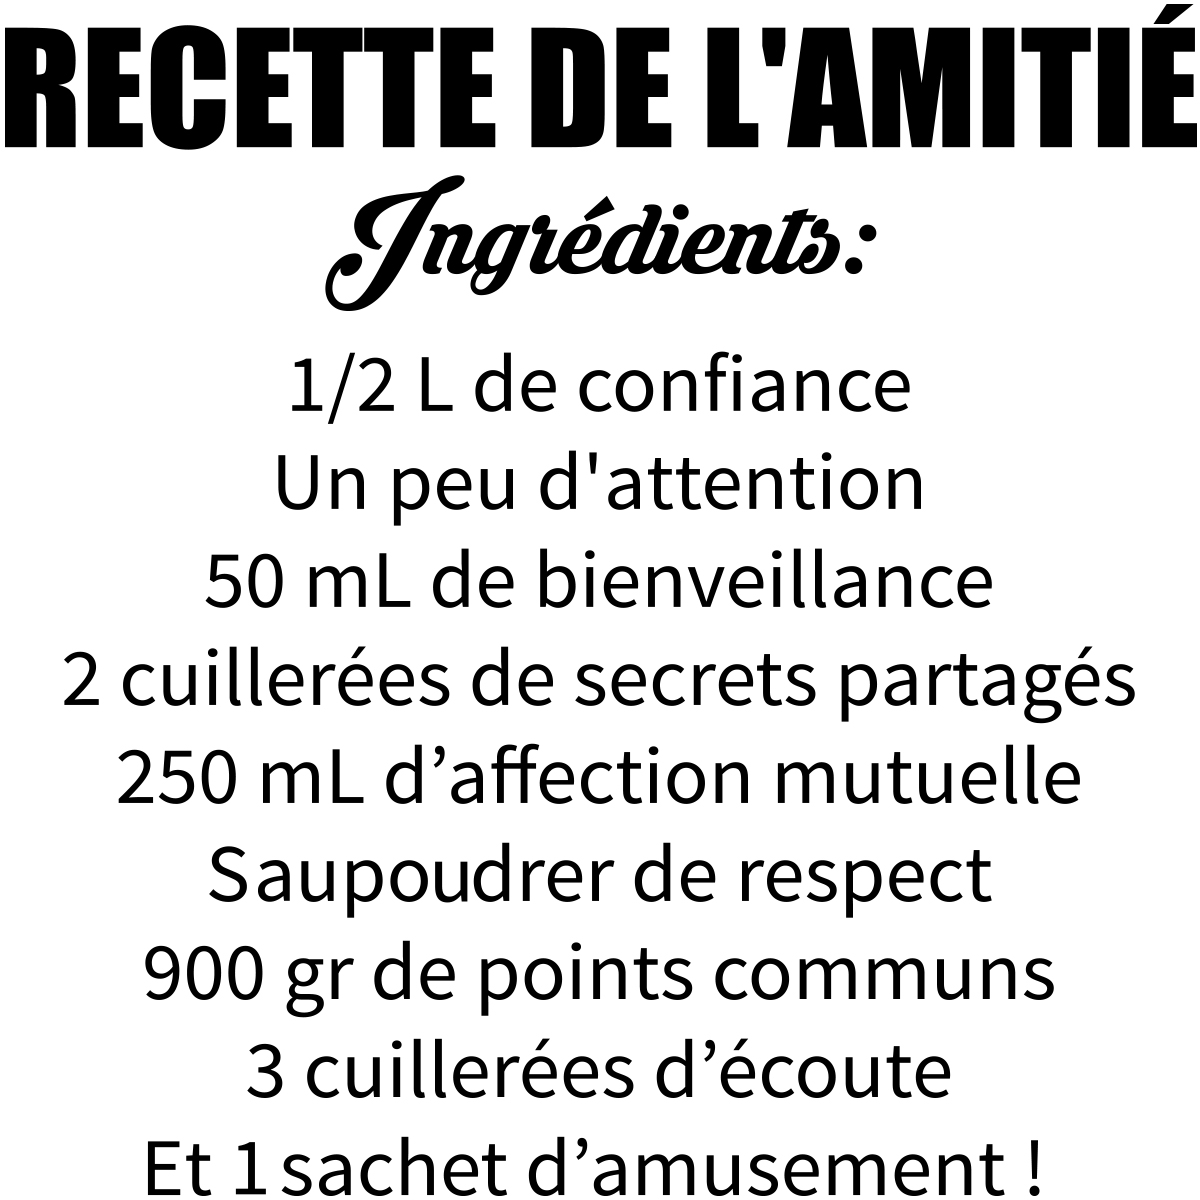 sticker citation la recette de l 39 amiti stickers citations fran ais ambiance sticker. Black Bedroom Furniture Sets. Home Design Ideas